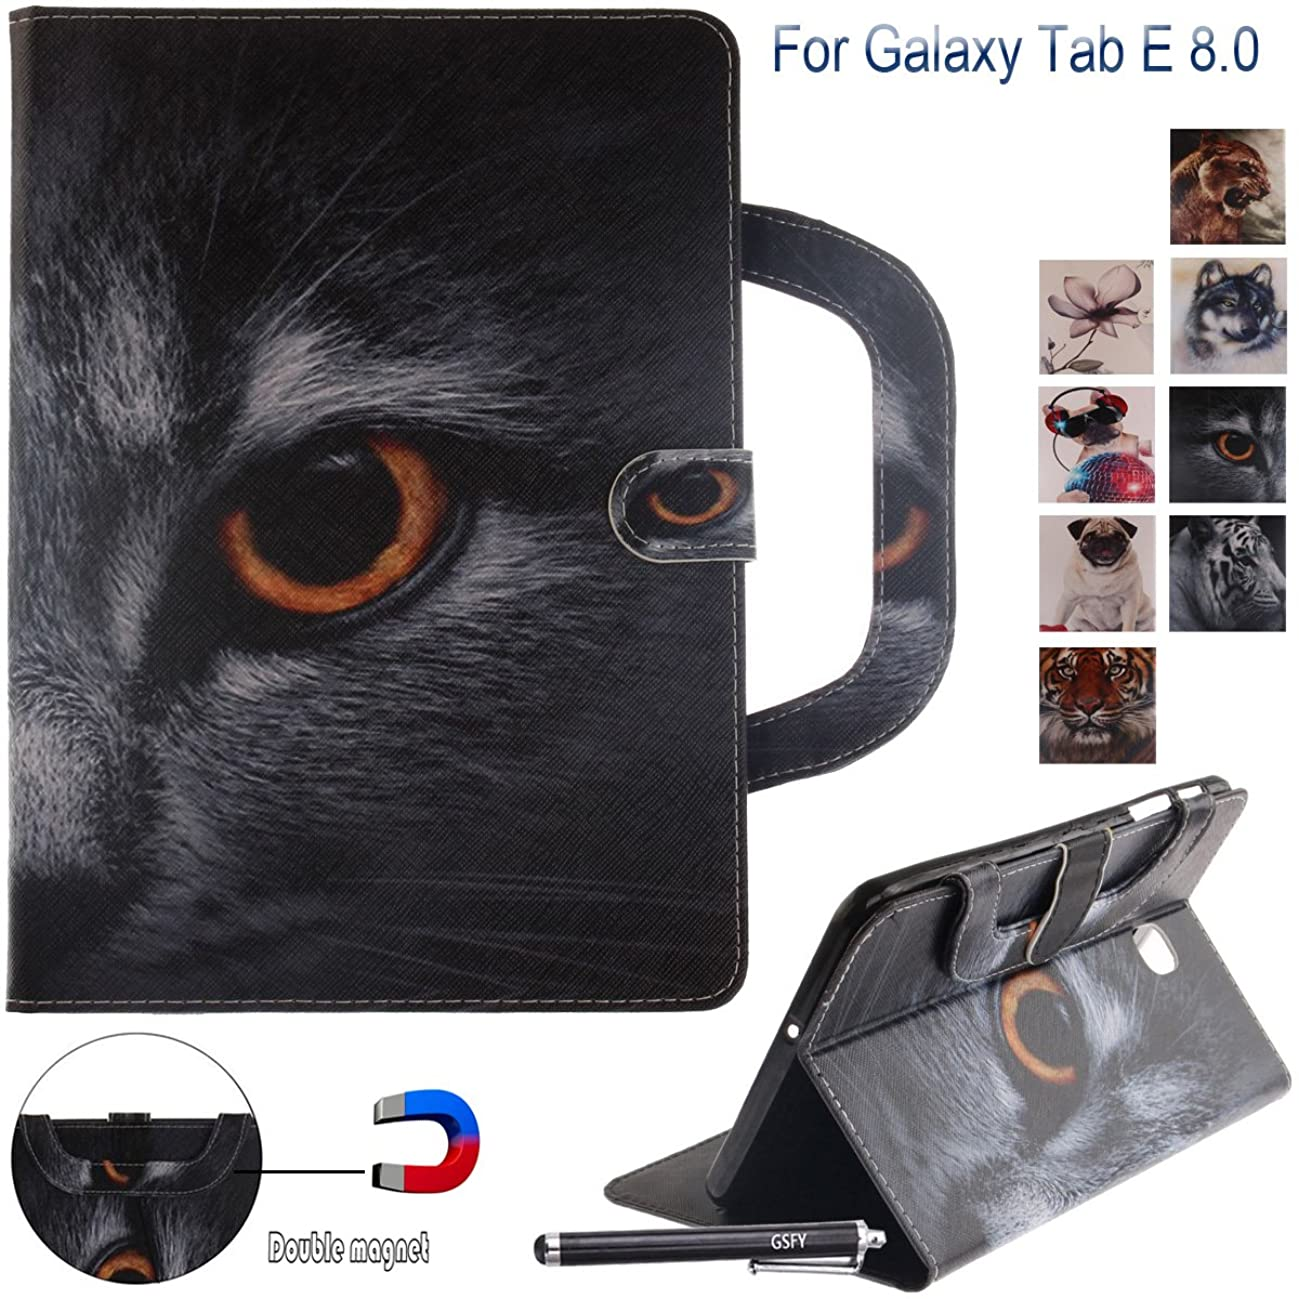 Galaxy Tab E 8.0 Case, Newshine PU Leather Hand-held Stand Wallet Cover with Card/Cash Slots for Samsung Galaxy Tab E 8.0'' 2016 Released SM-T377/T375/T378, Half-face Cat